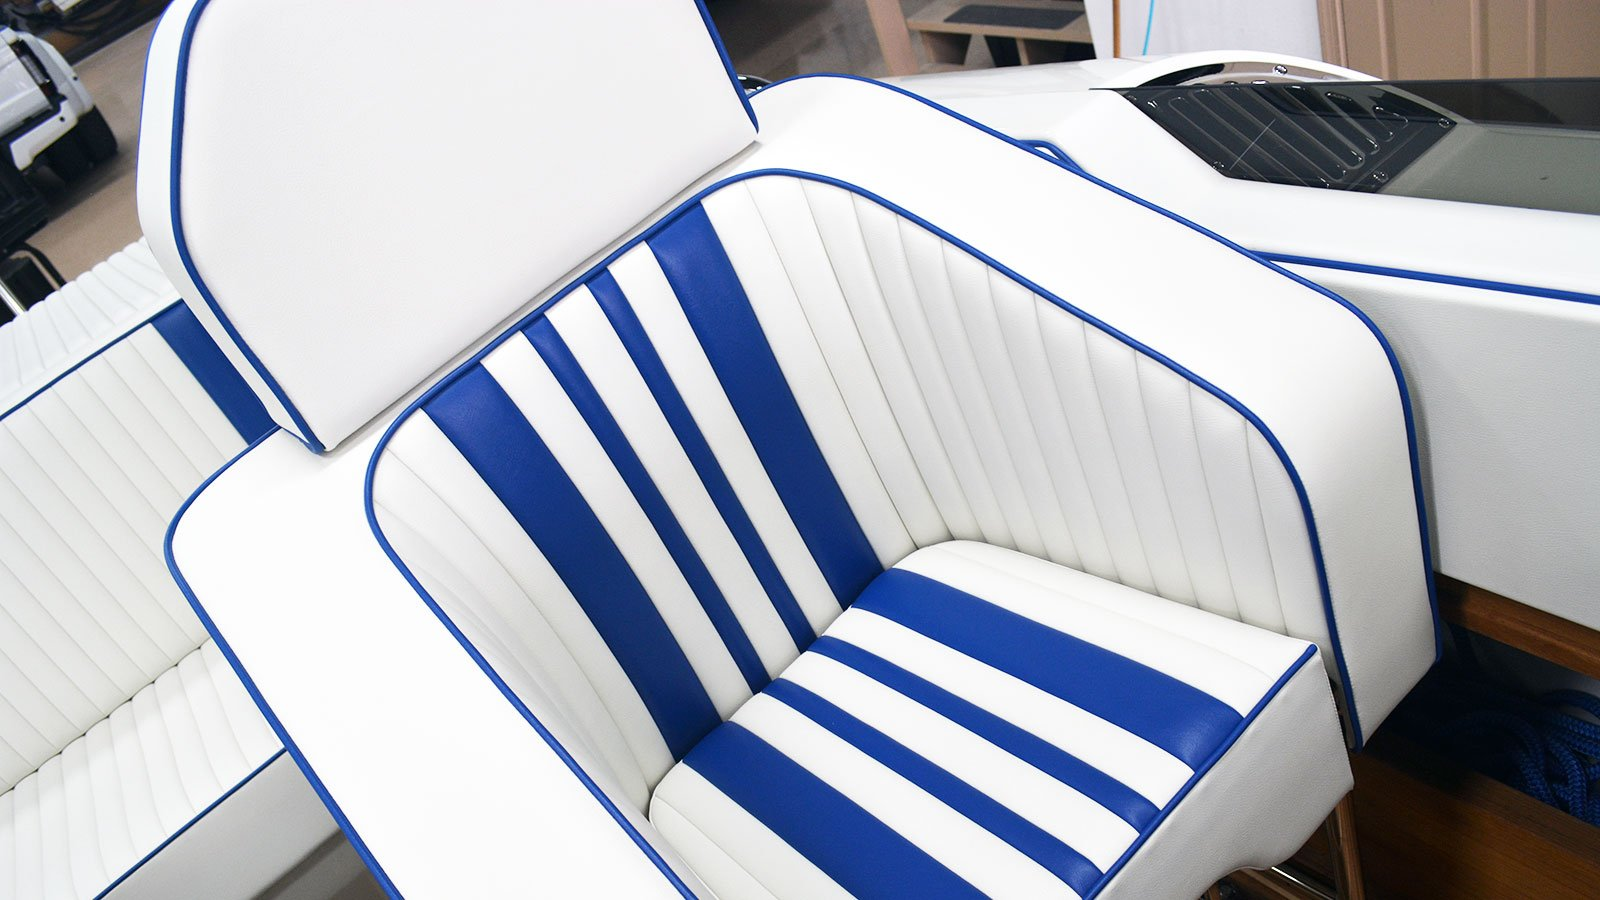 interior-custom-boat-seats